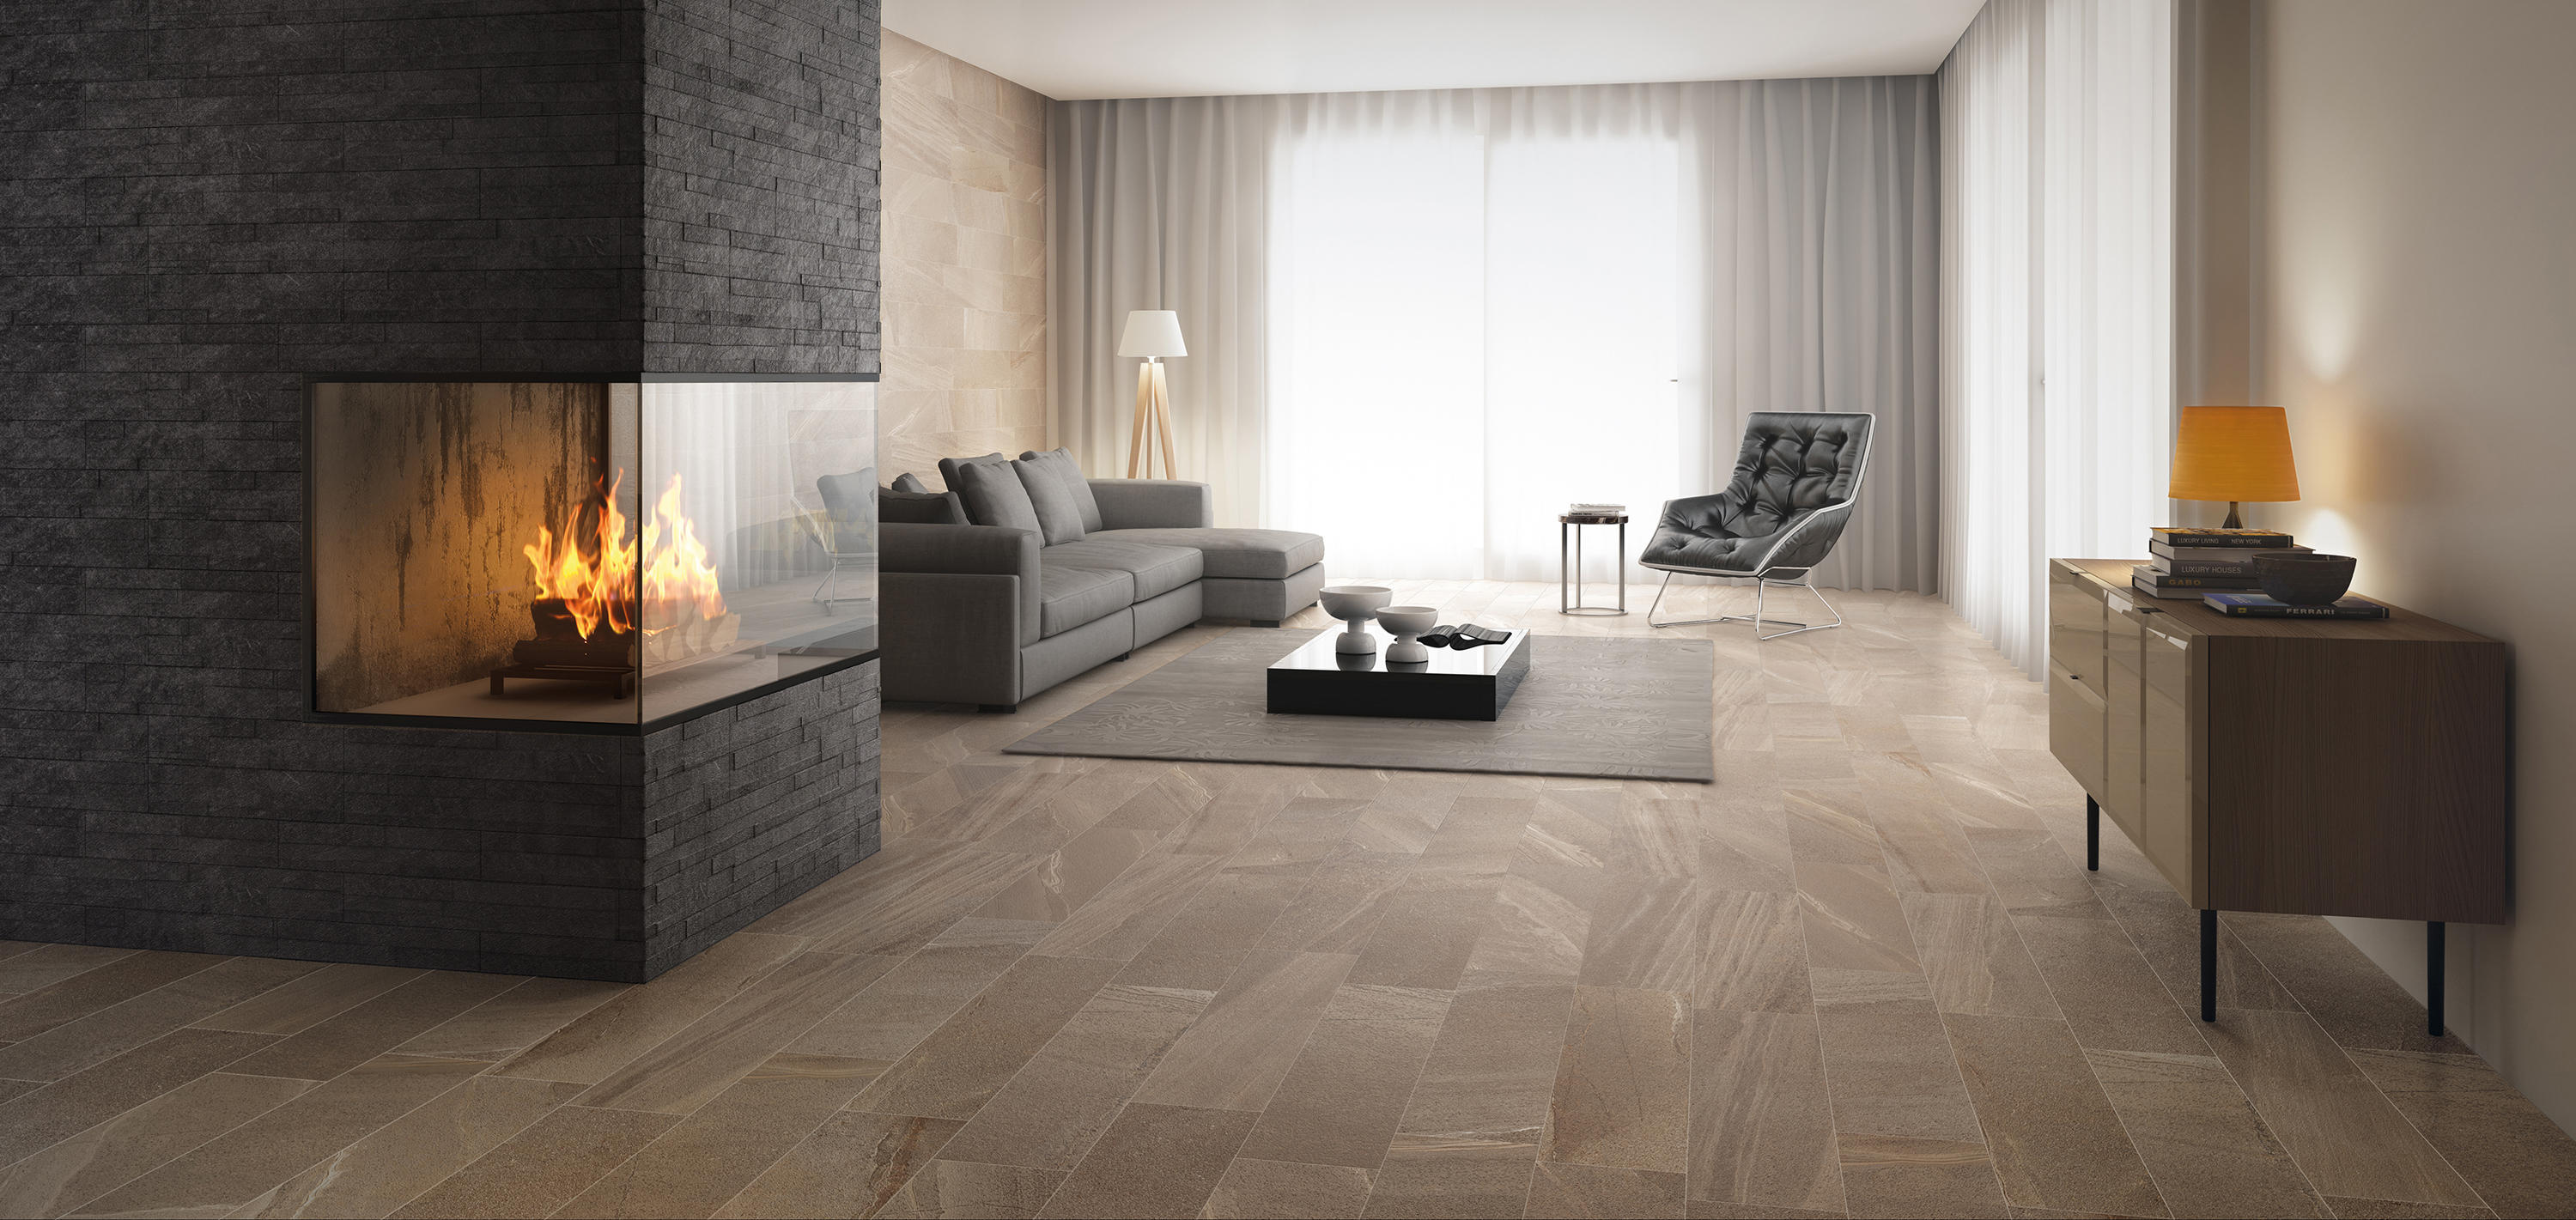 lake black floor tiles from ceramiche supergres architonic. Black Bedroom Furniture Sets. Home Design Ideas